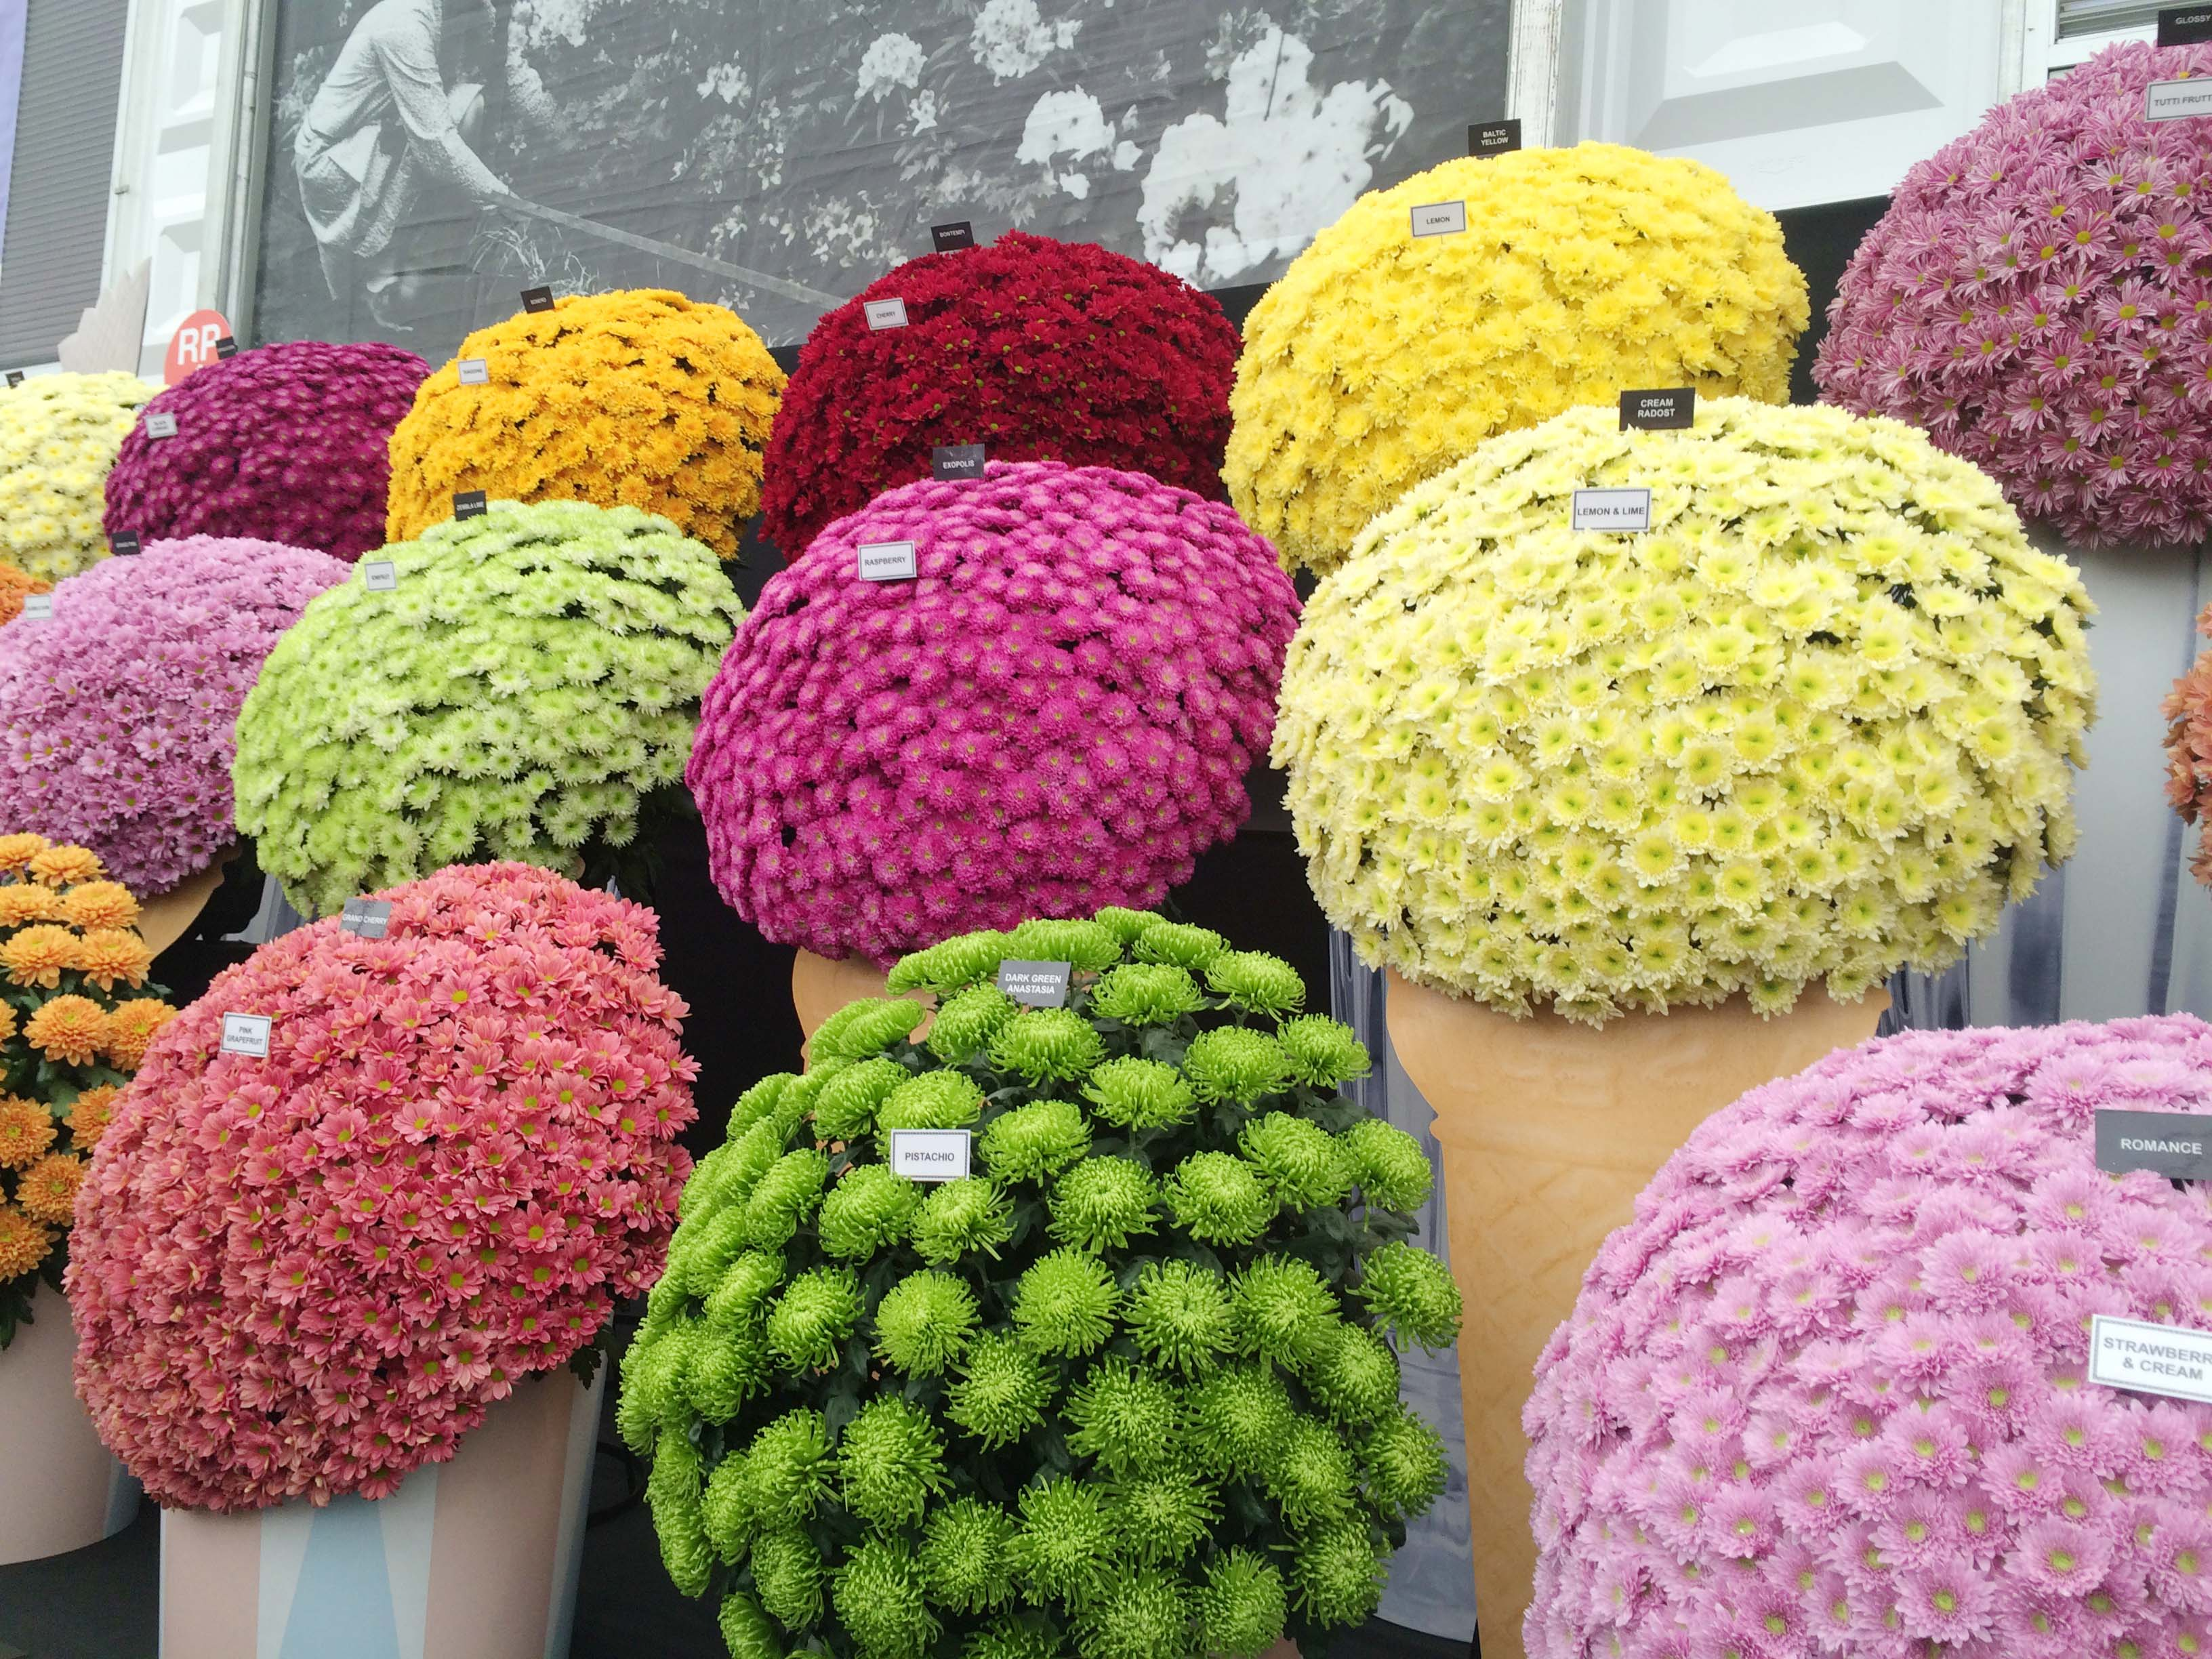 Chrysanthemums at Chelsea